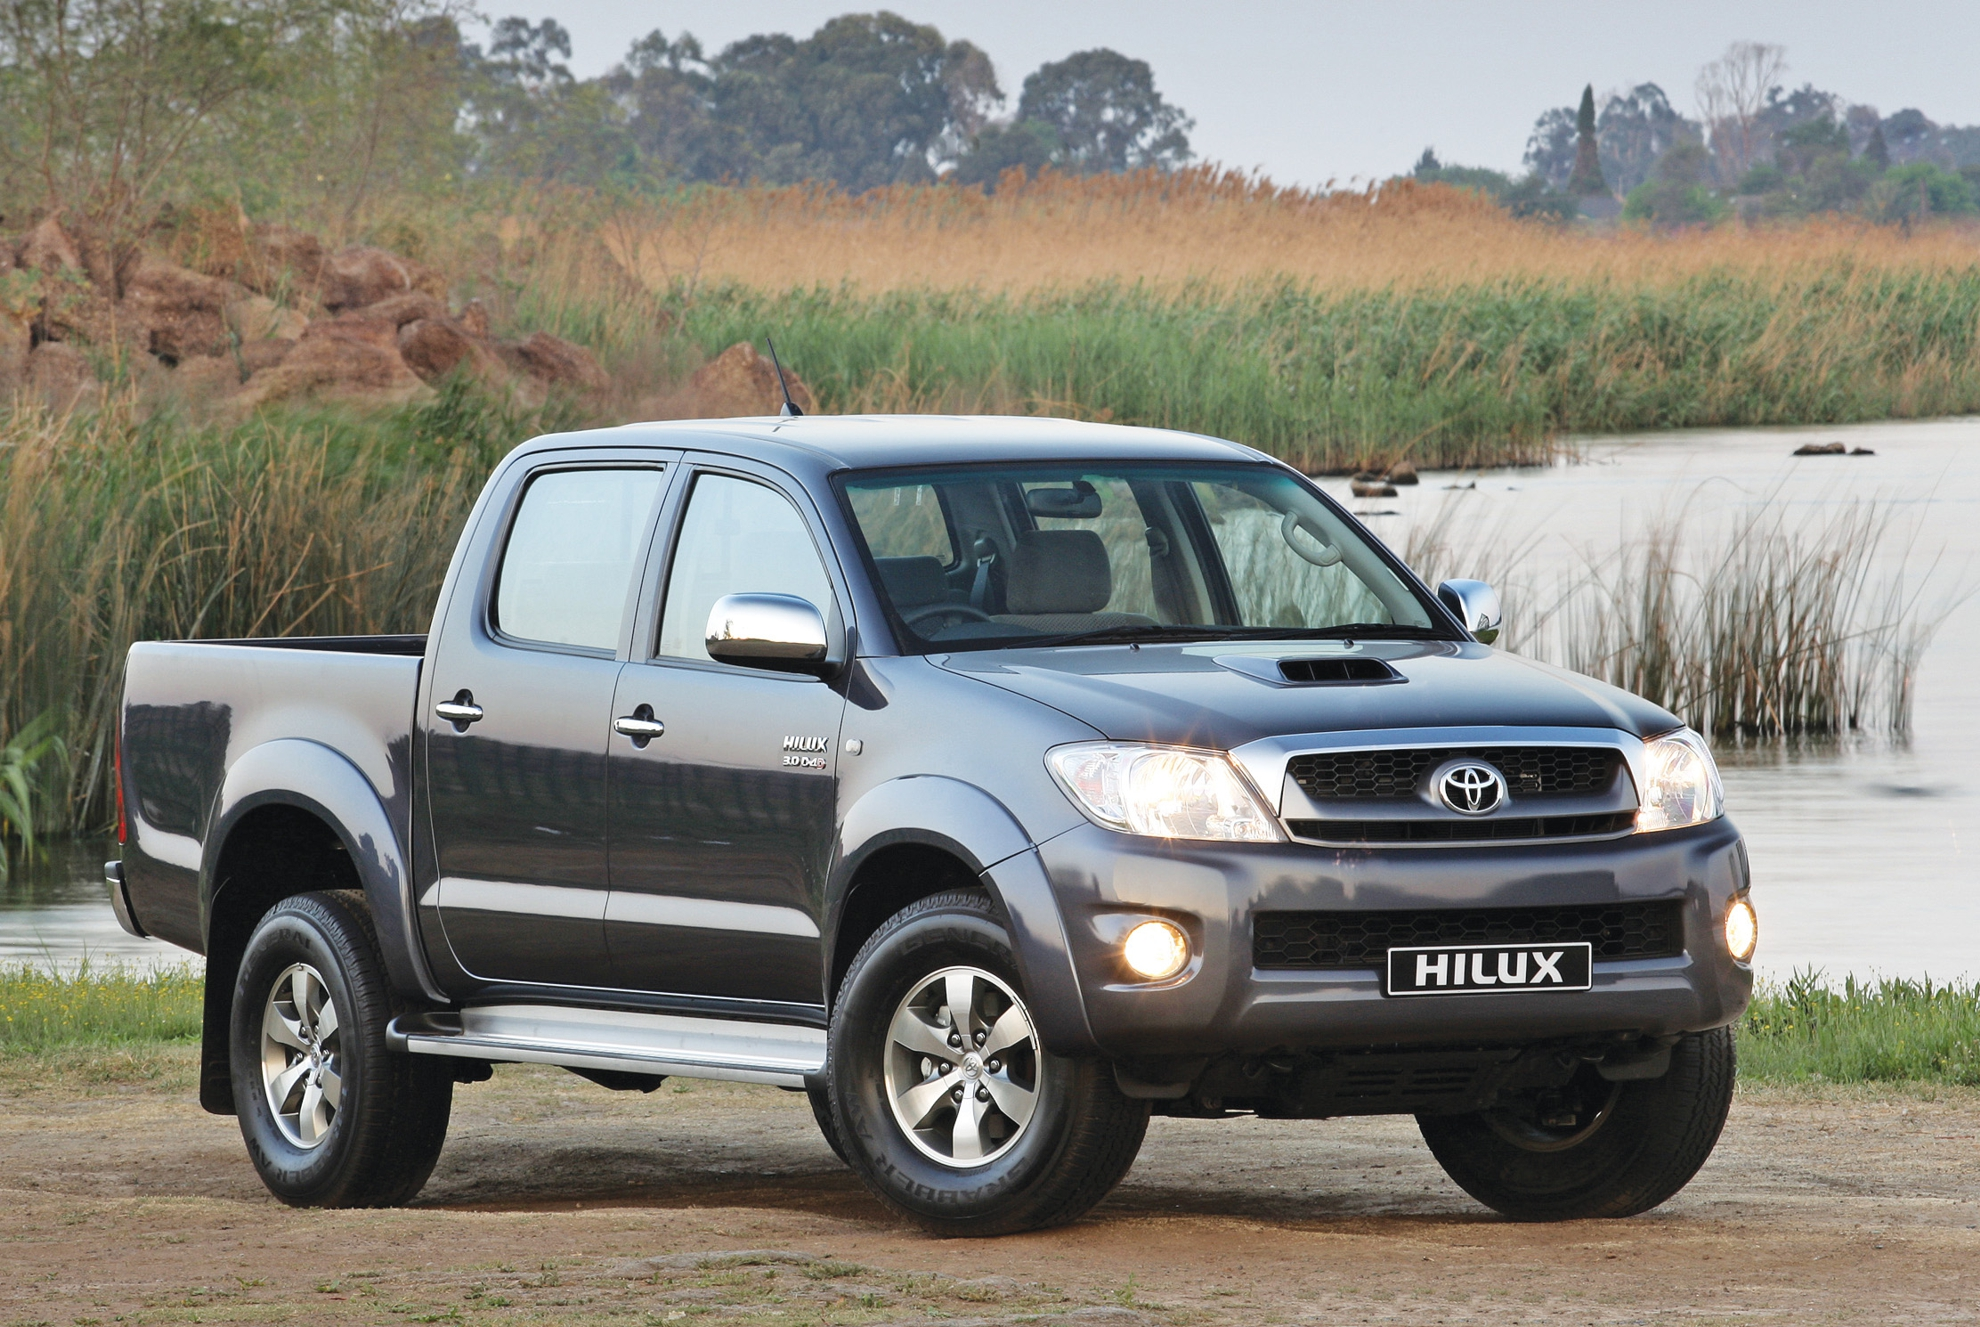 Toyota-Hilux-7th-generation